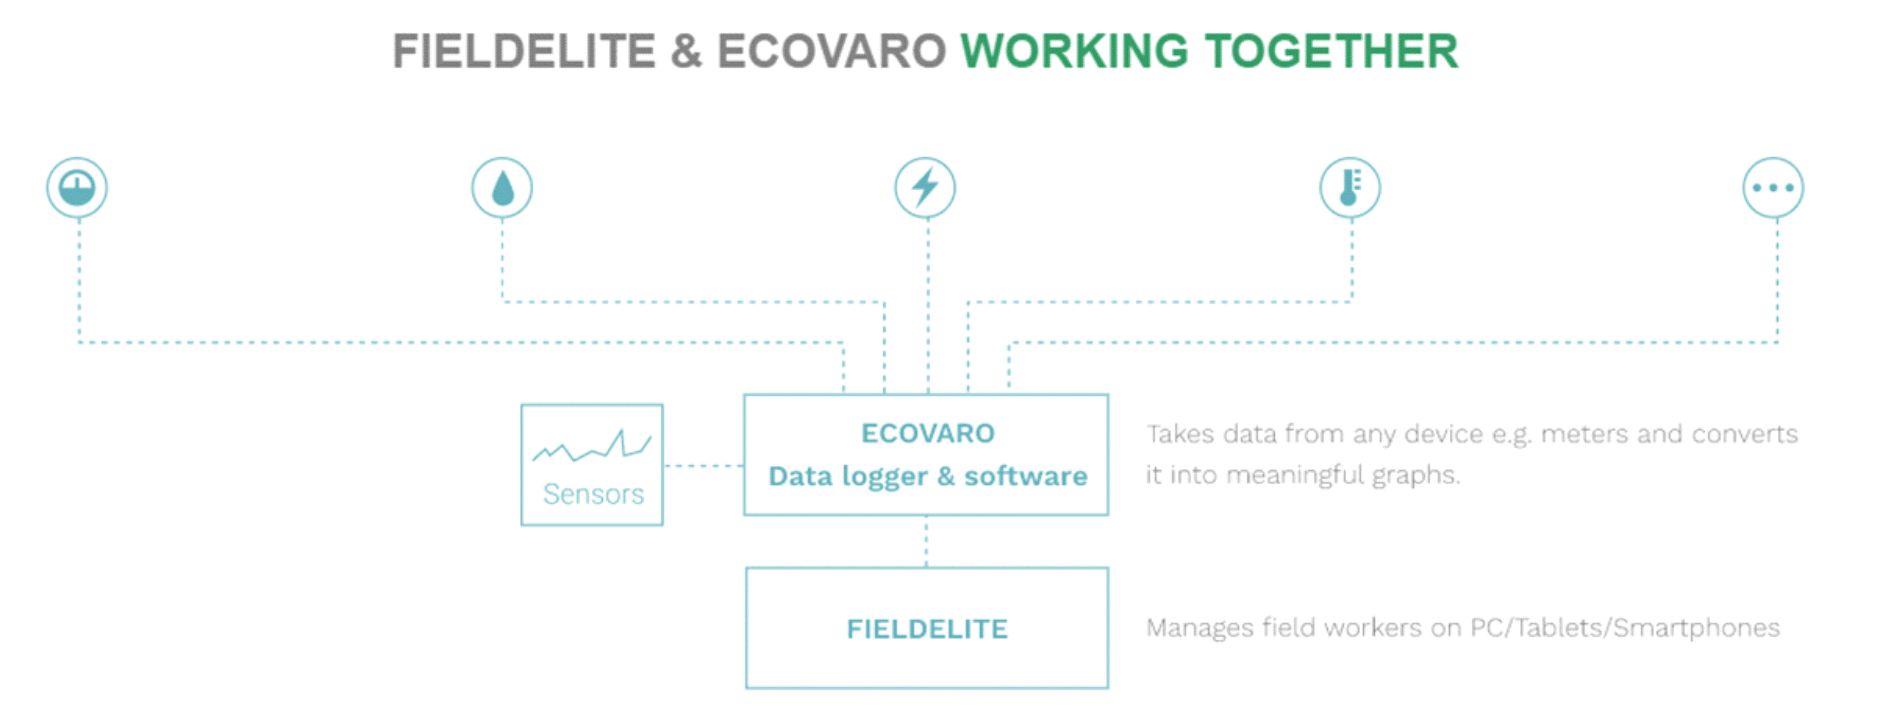 FieldElite and Ecovaro Working Together